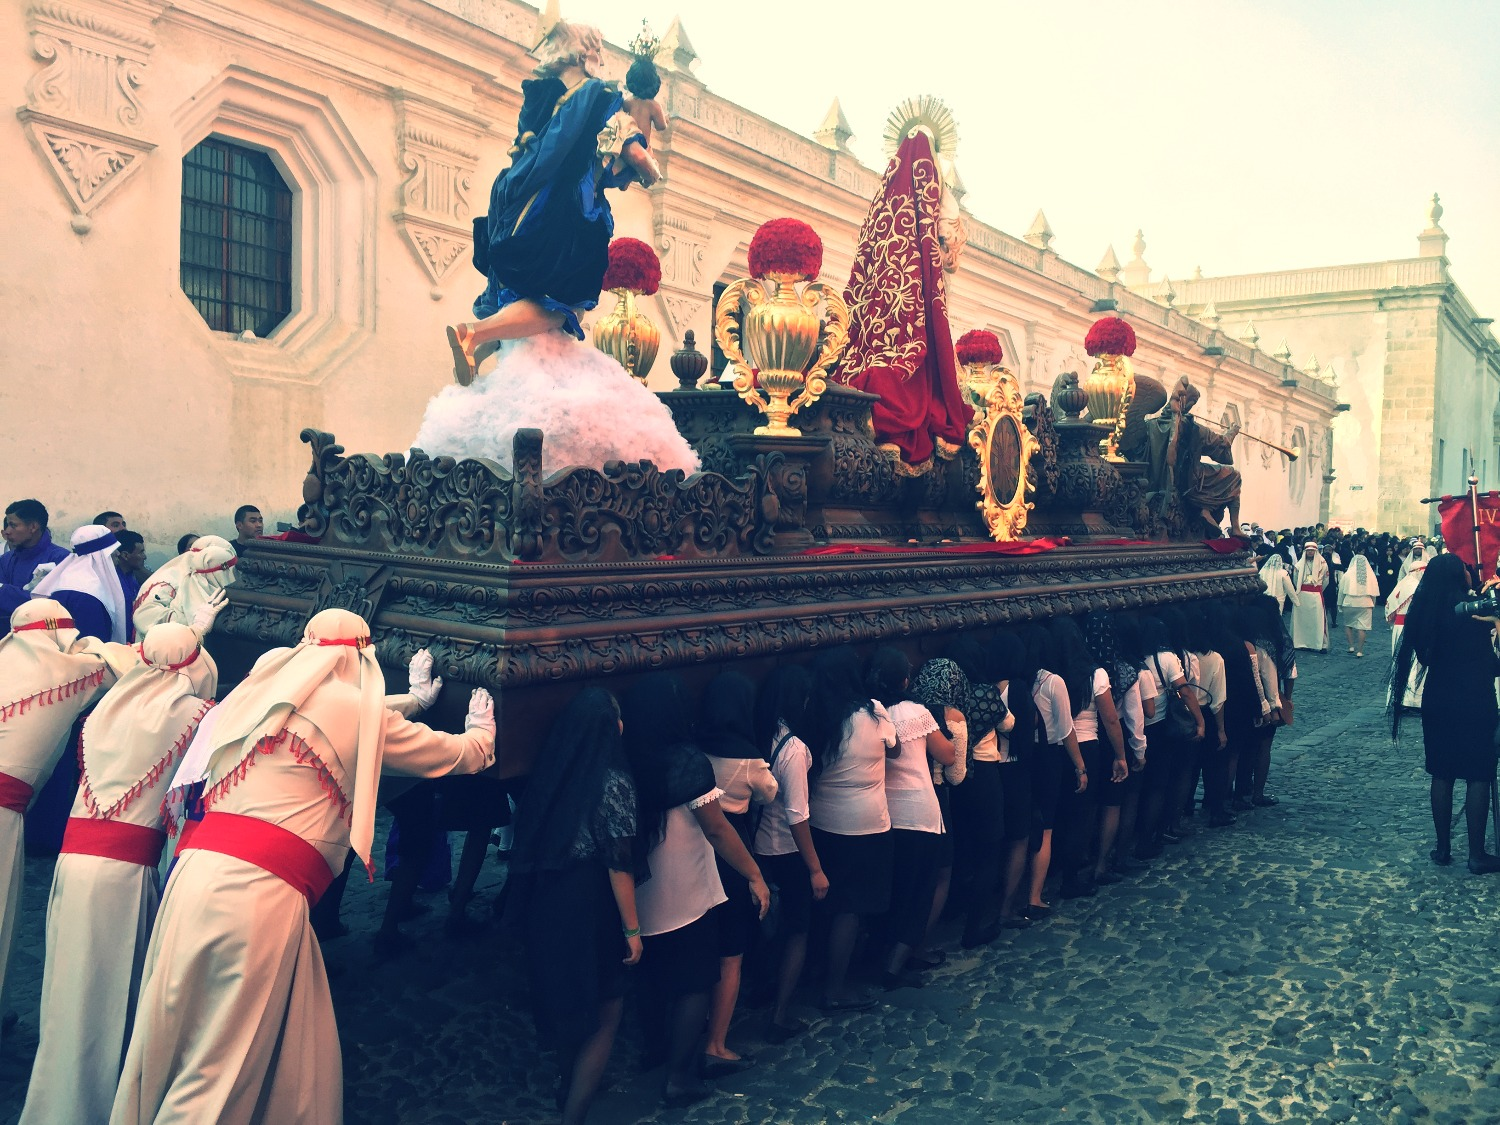 Cargadoras carrying the Anda